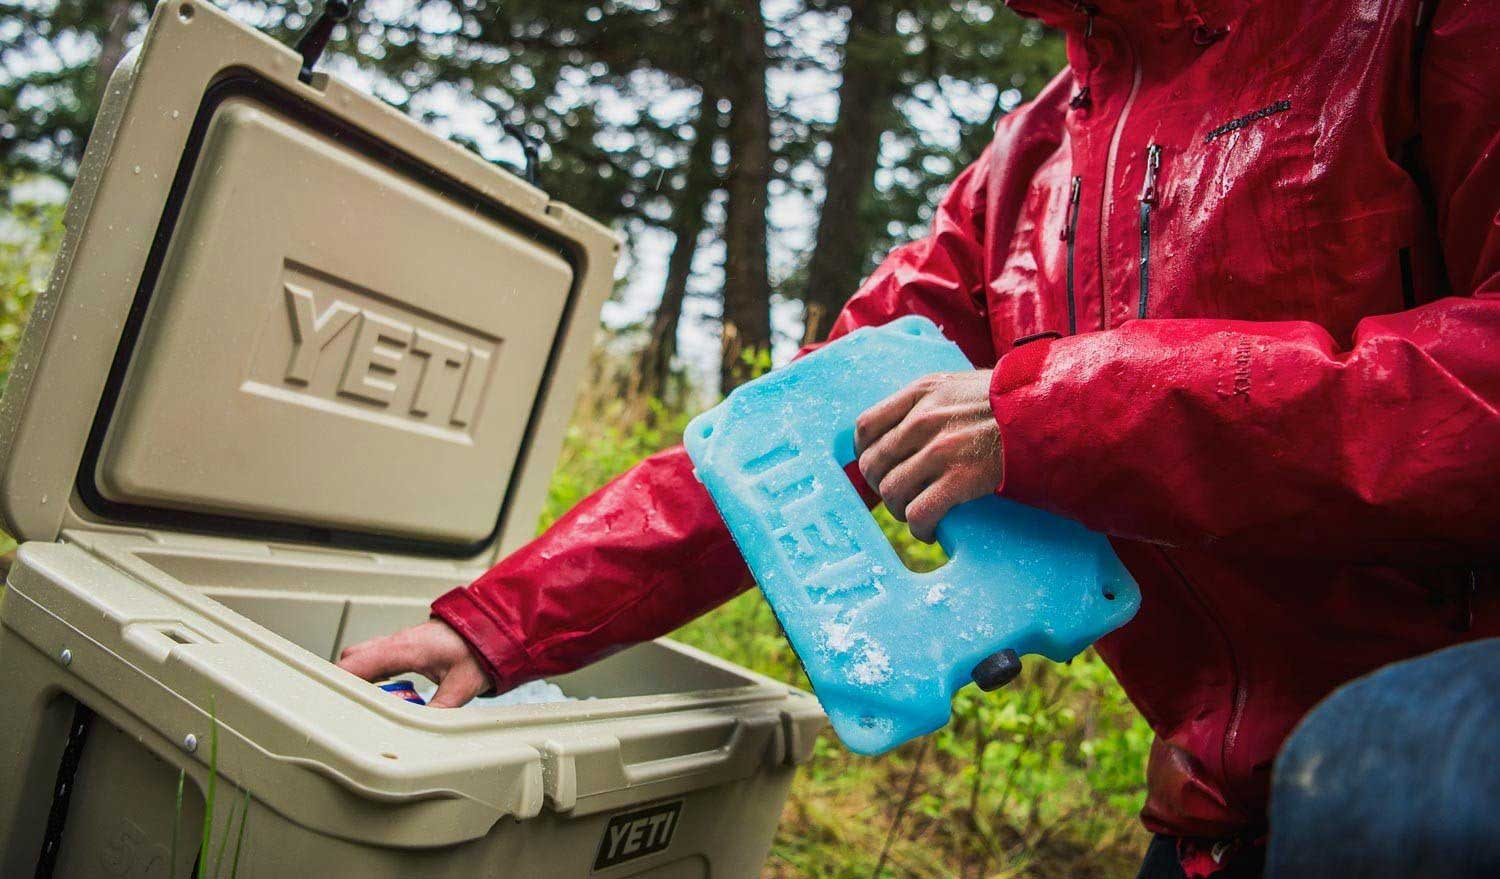 Person putting a Yeti ice pack into a cooler